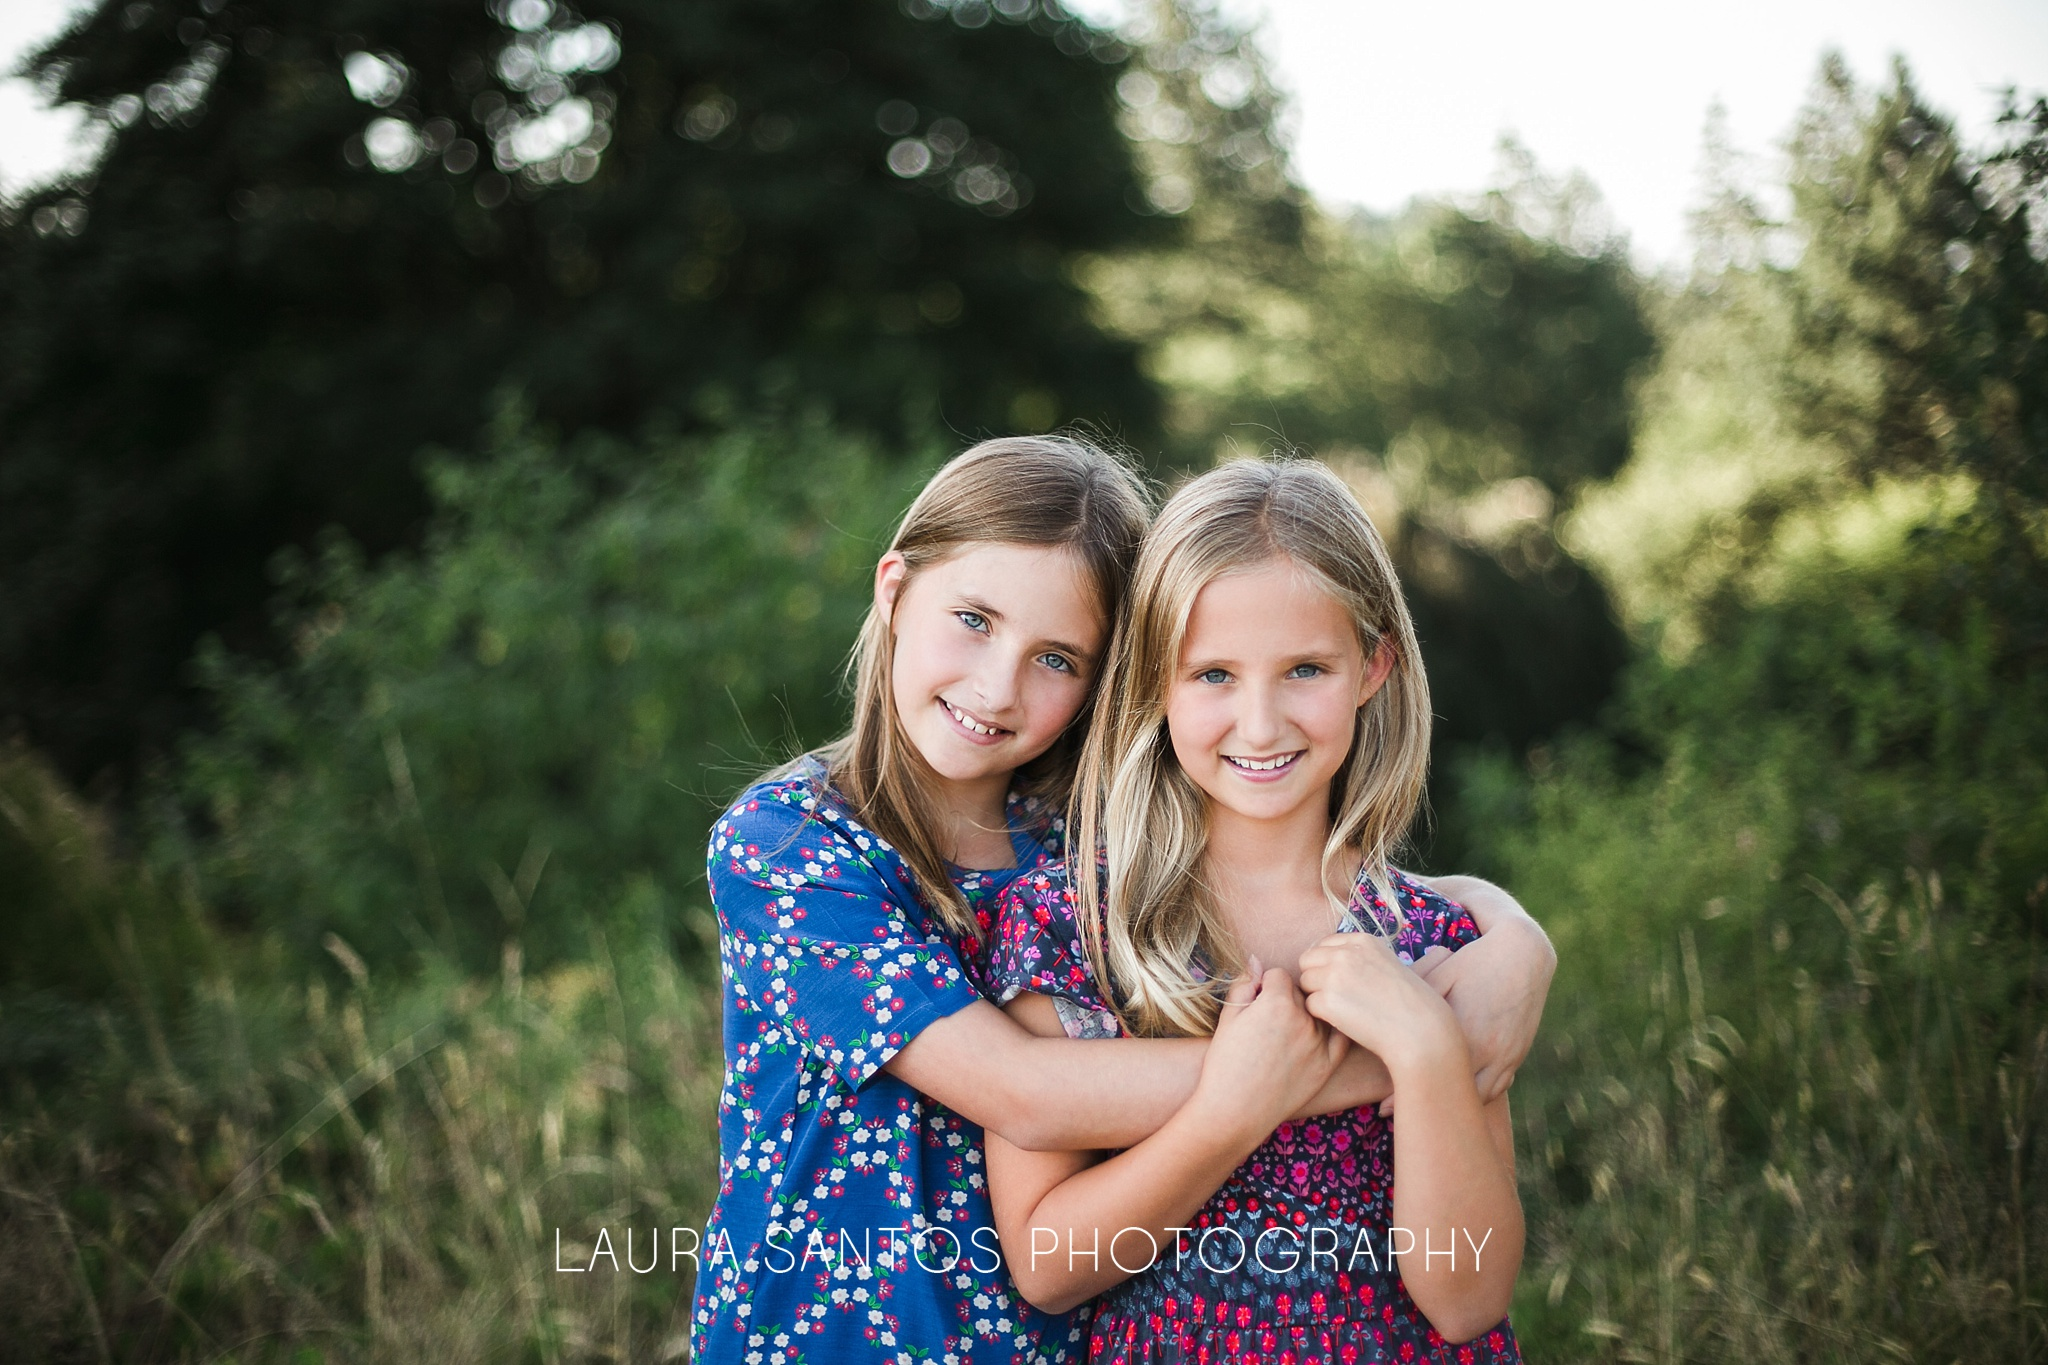 Laura Santos Photography Portland Oregon Family Photographer_0129.jpg